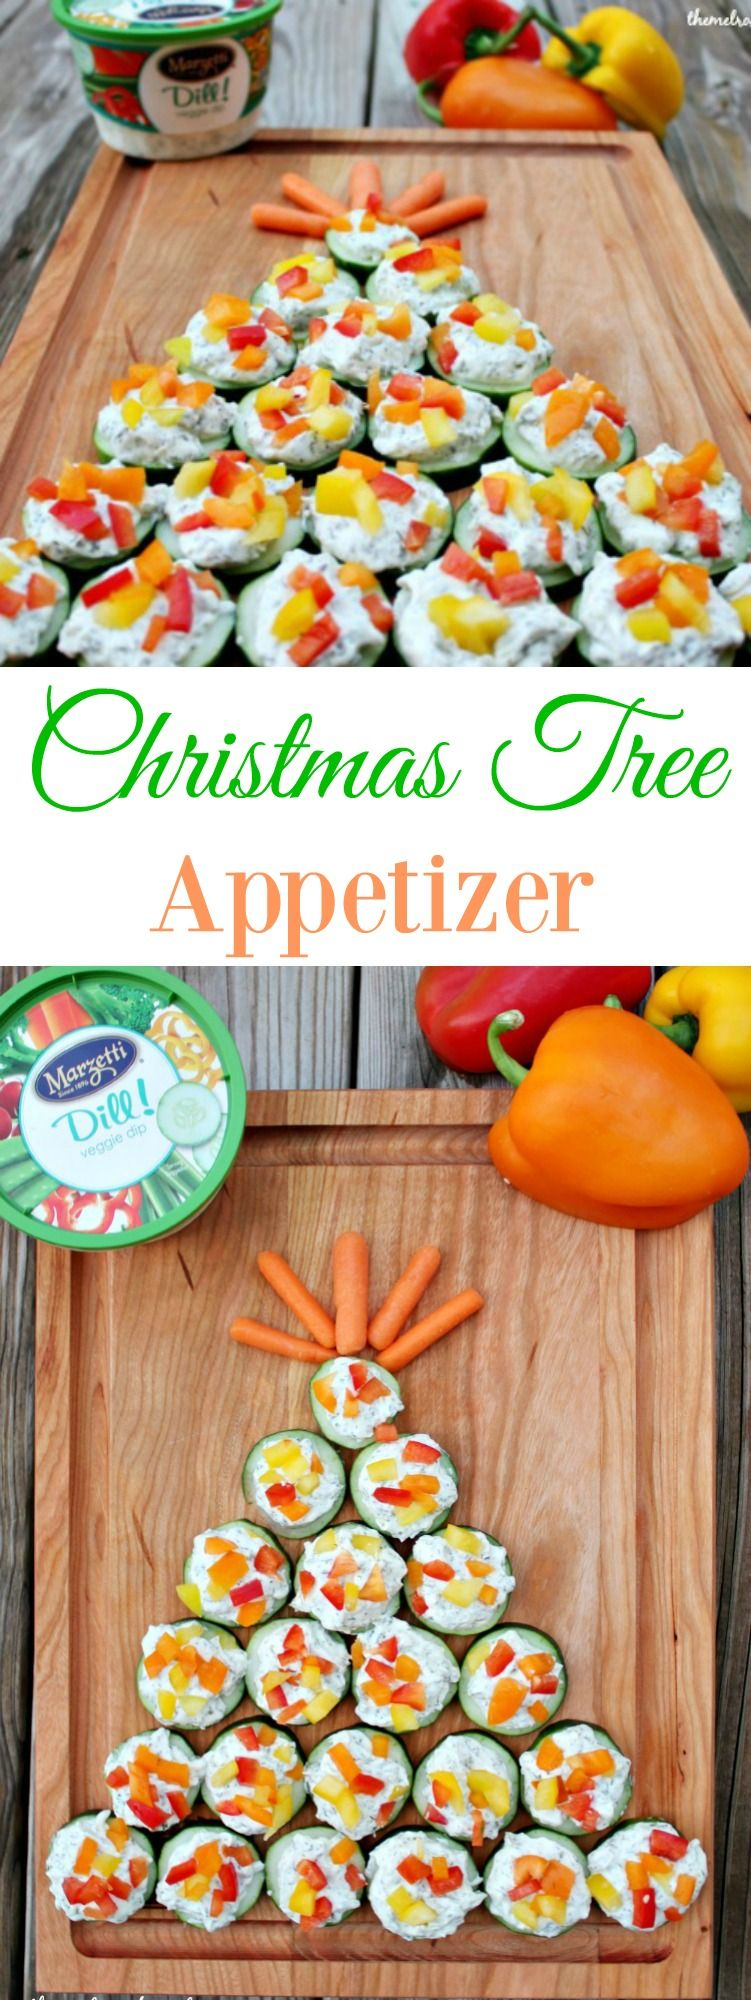 Christmas Tree Appetizer is a simple and perfect appetizer idea that the whole family will love this holiday season. #ad #marzetti